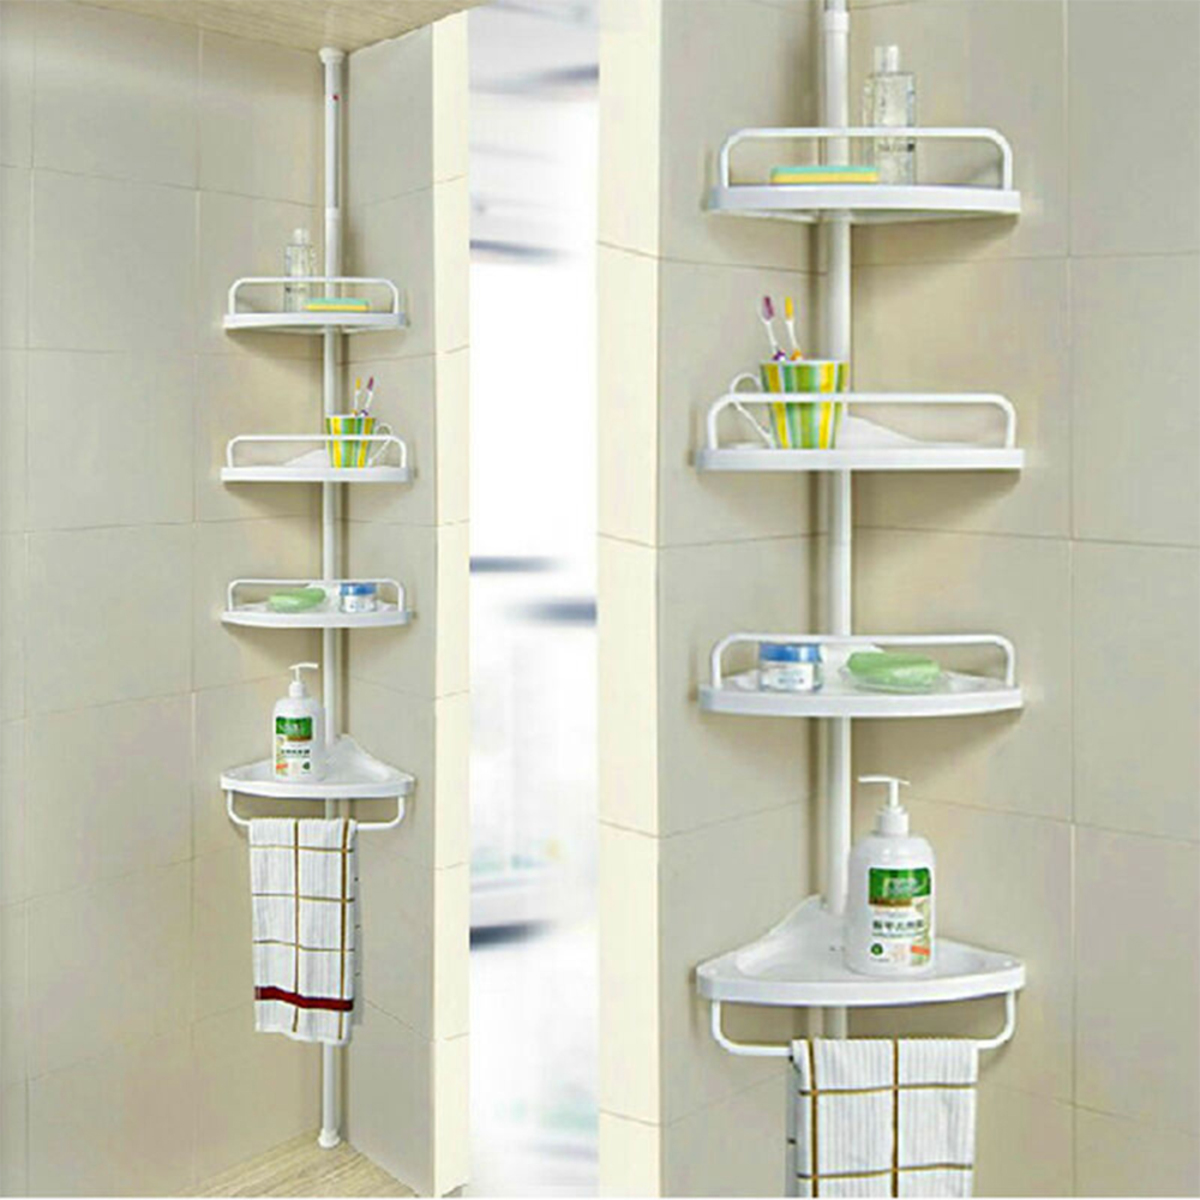 Bathroom floor to ceiling rack - SQ-1908